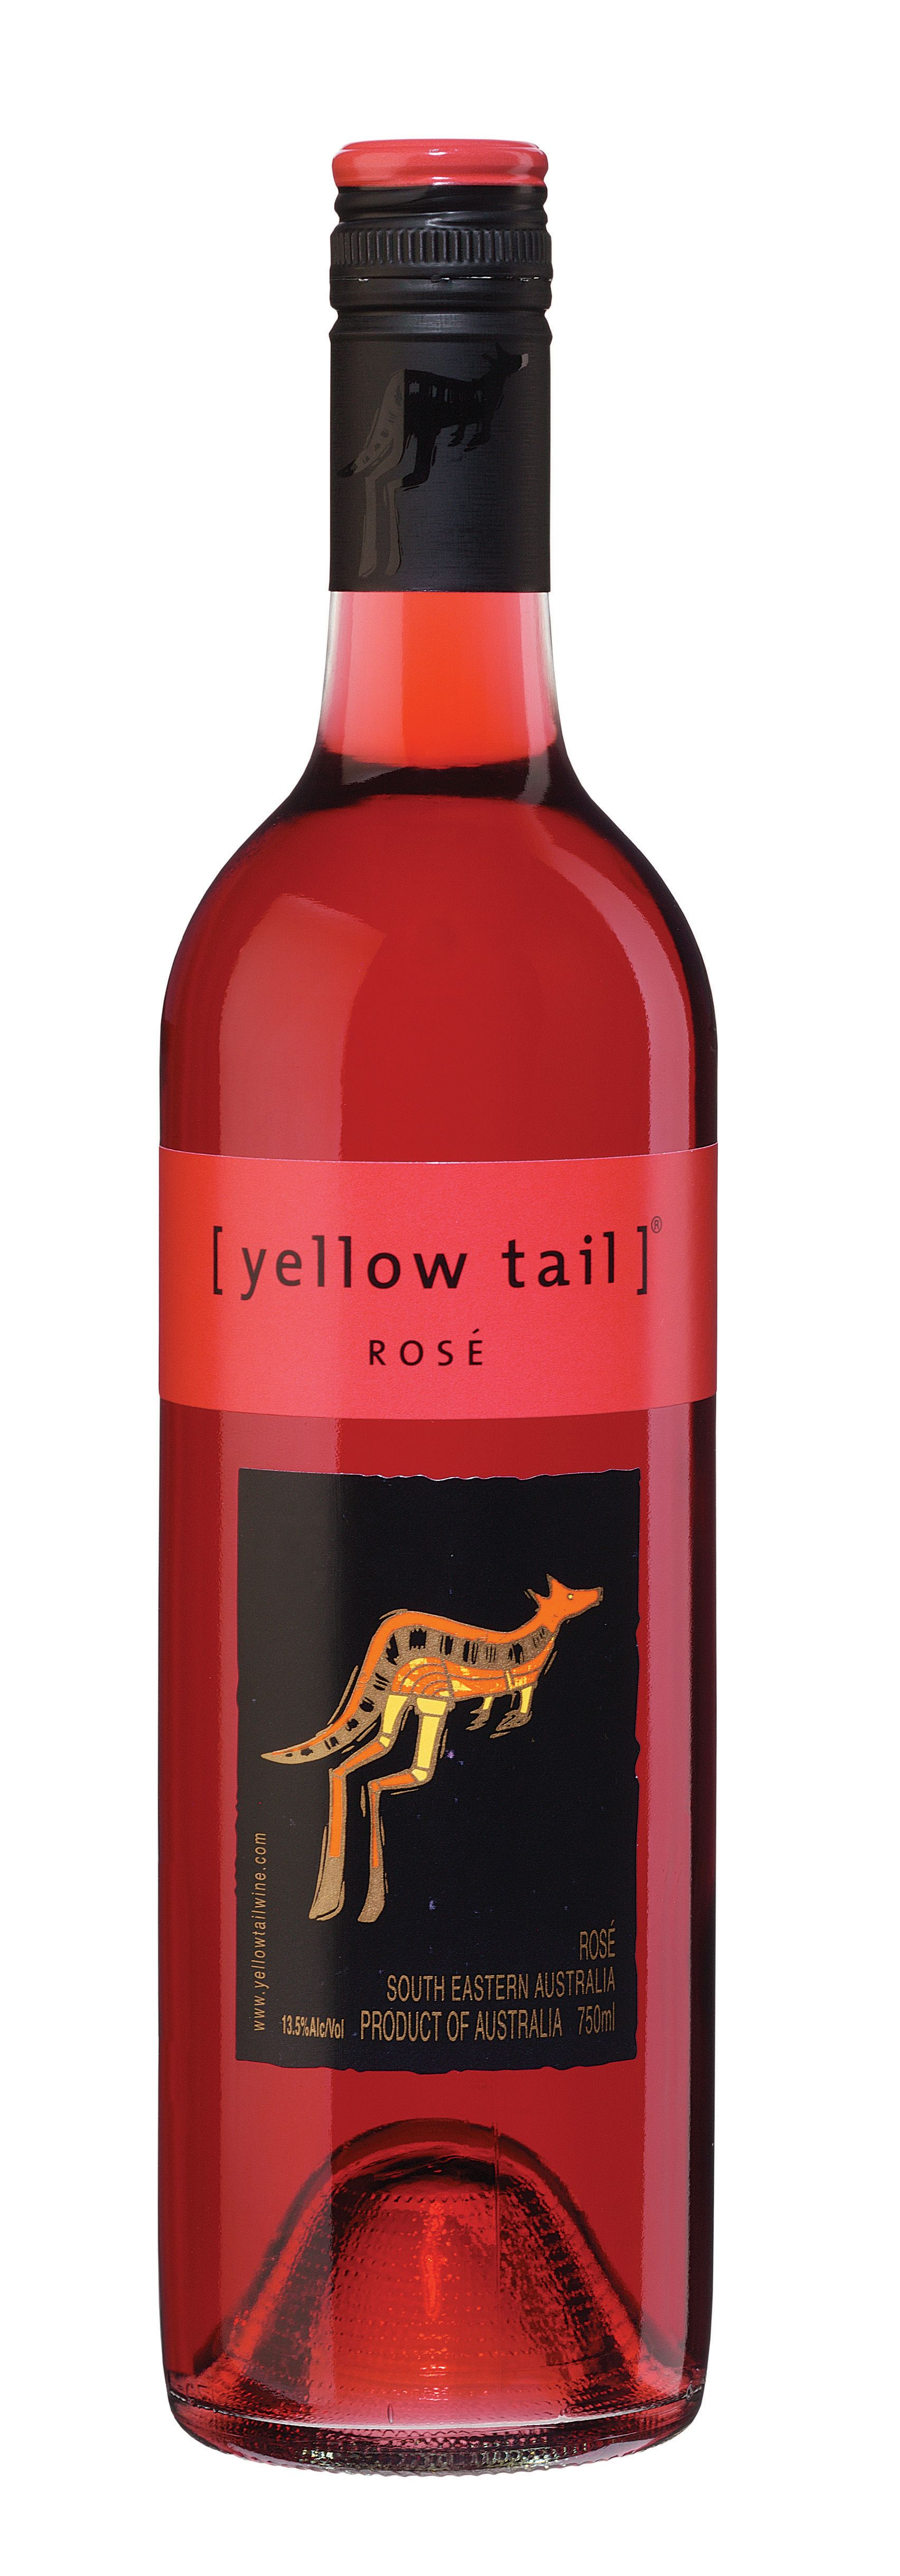 I Enjoyed This Bright Dry And Fruity Dry Rose Recently It Was Delicious Wine And Liquor Yellow Tail Wine Wine And Spirits